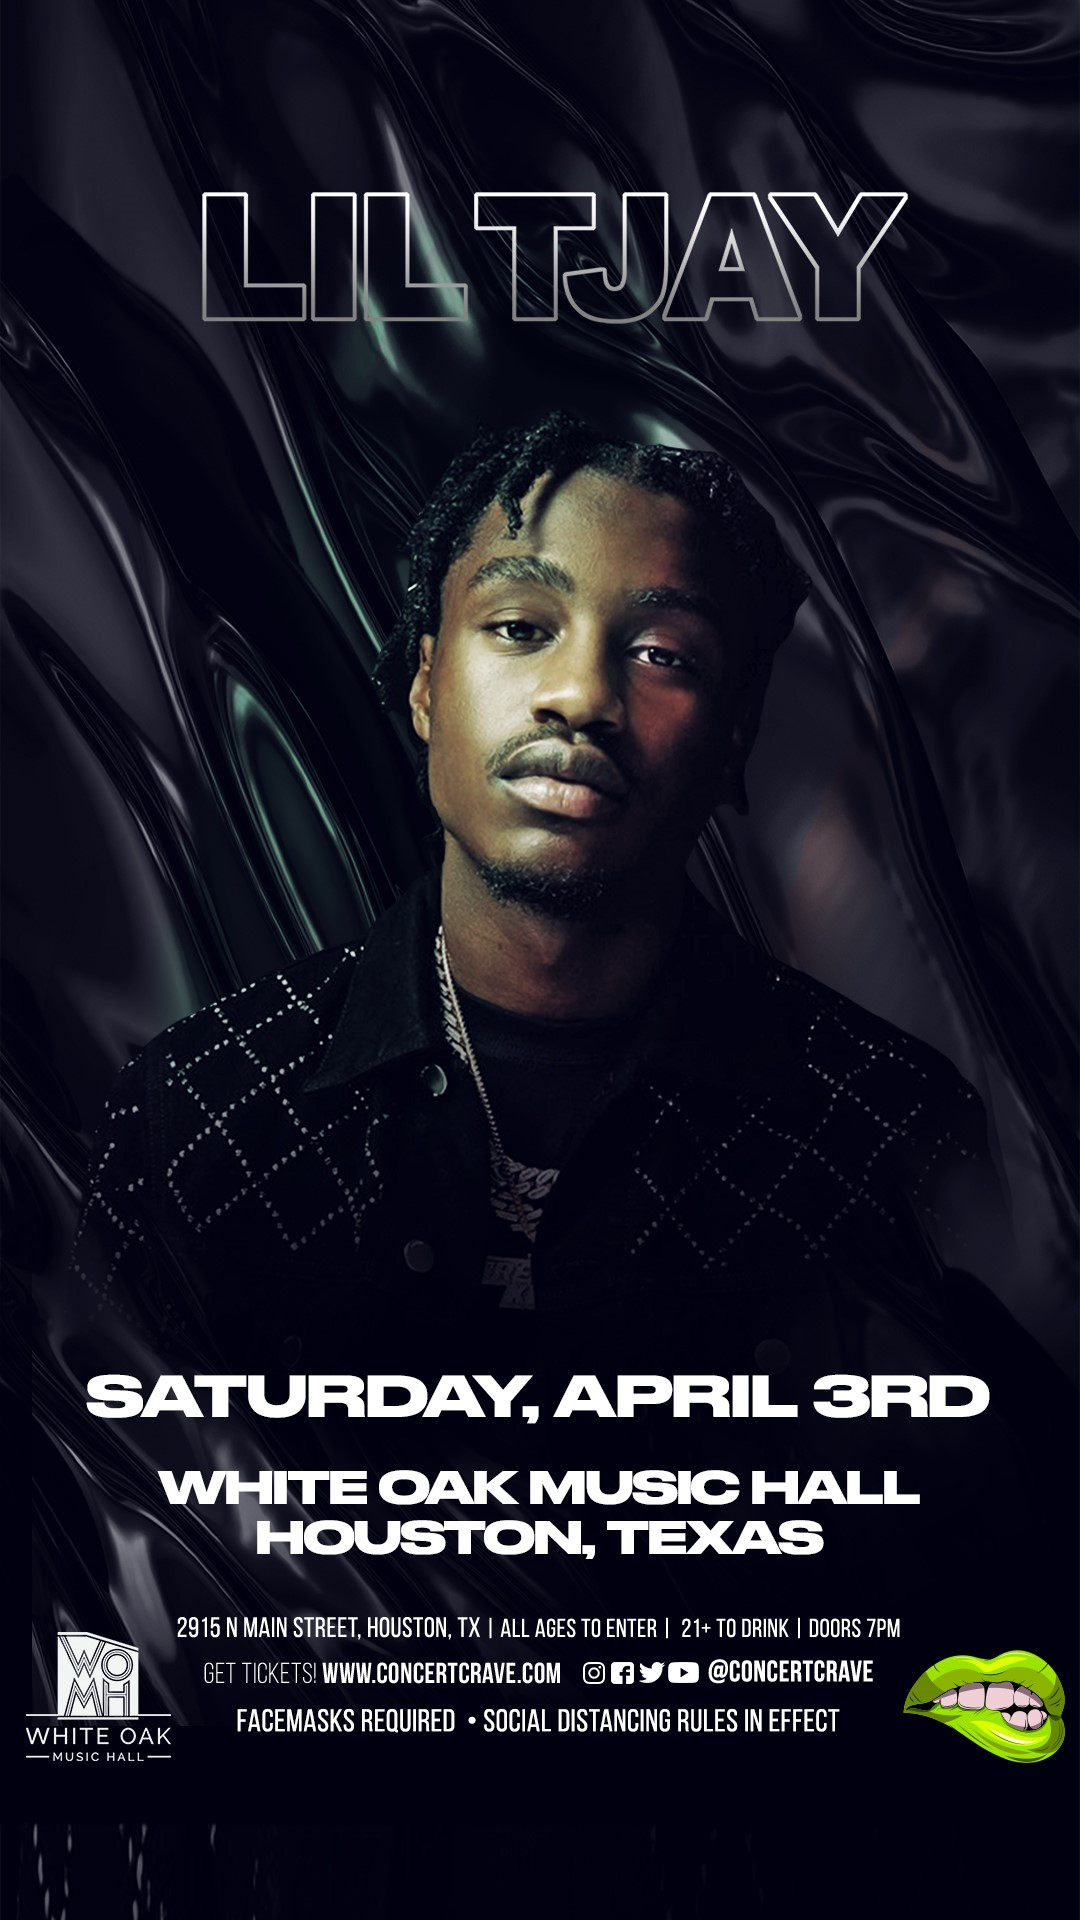 lil tjay to perform at white oak music